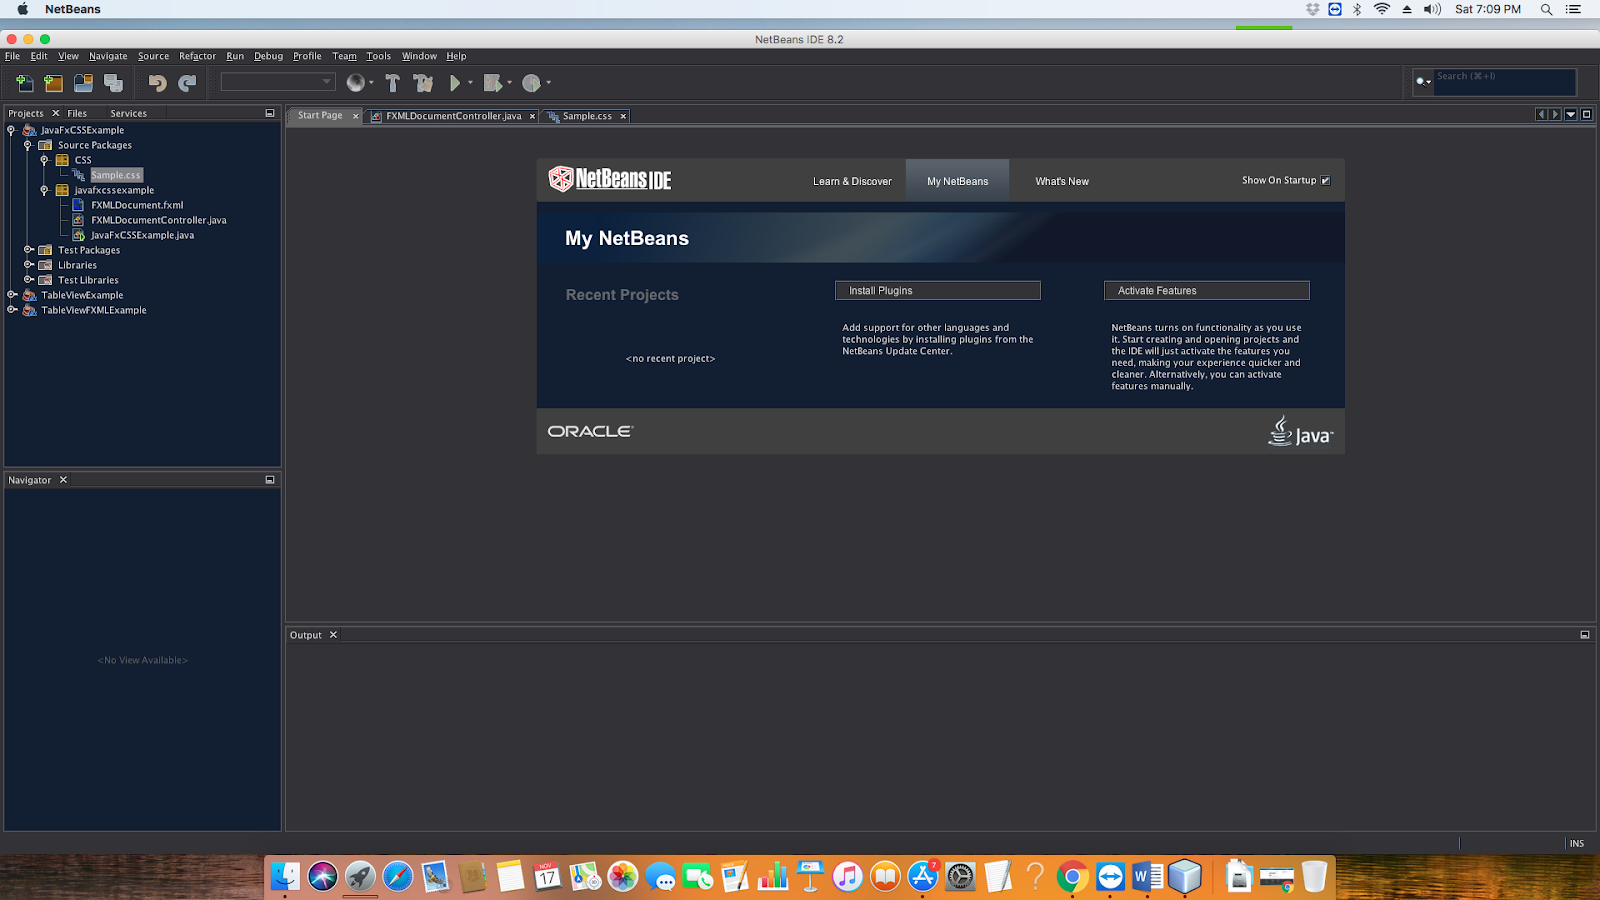 COOL IT HELP: How to restore default theme in NetBeans IDE?